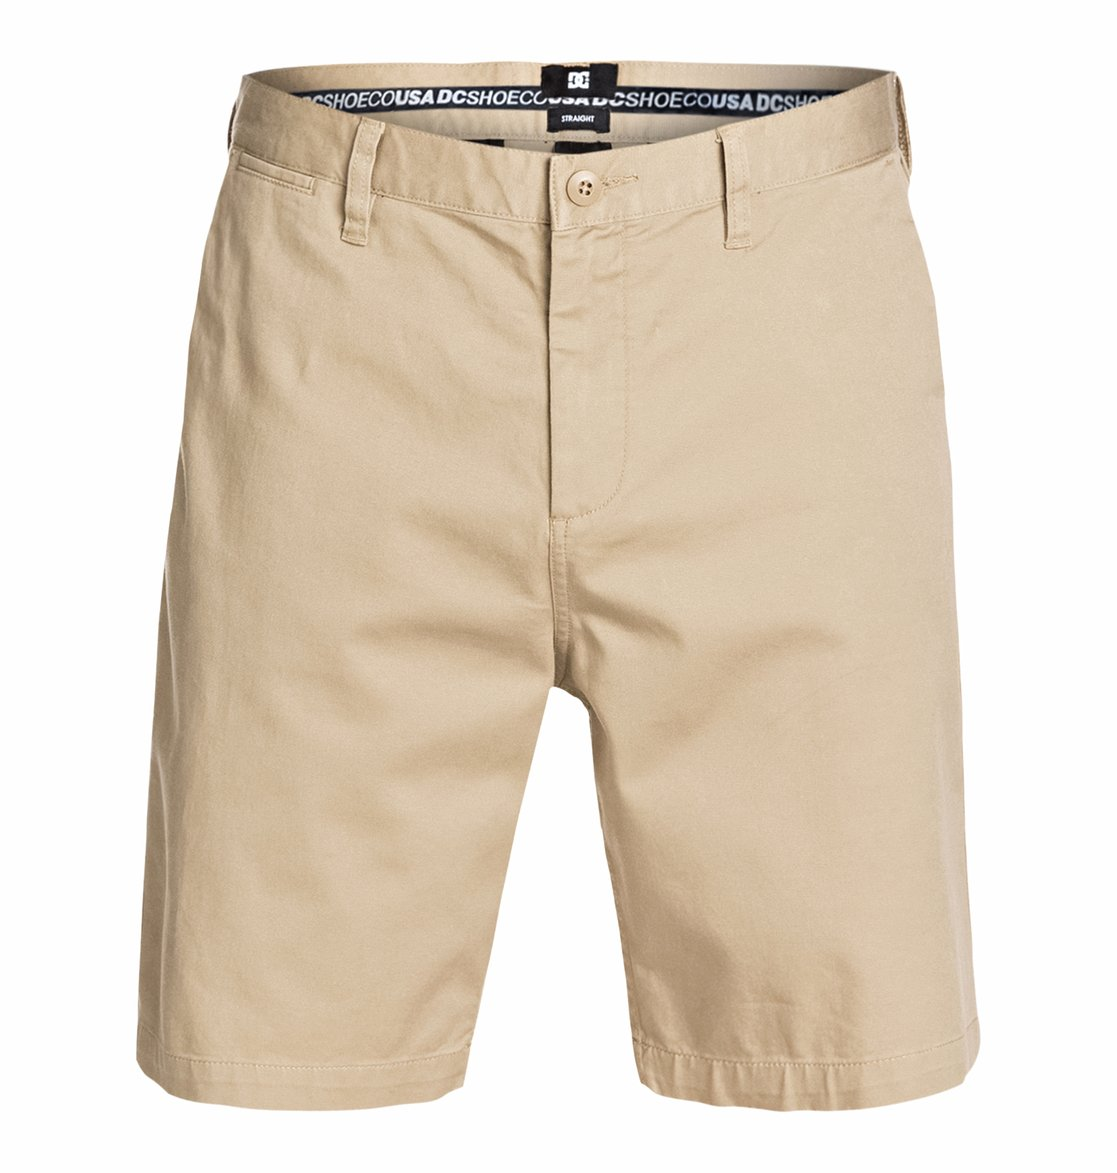 http://static.quiksilver.com/www/store.quiksilver.eu/html/images/catalogs/global/dcshoes-products/all/default/hi-res/edyws03009_workerstraight20.5shorts%2Cv_tky0_frt1.jpg?Refresh